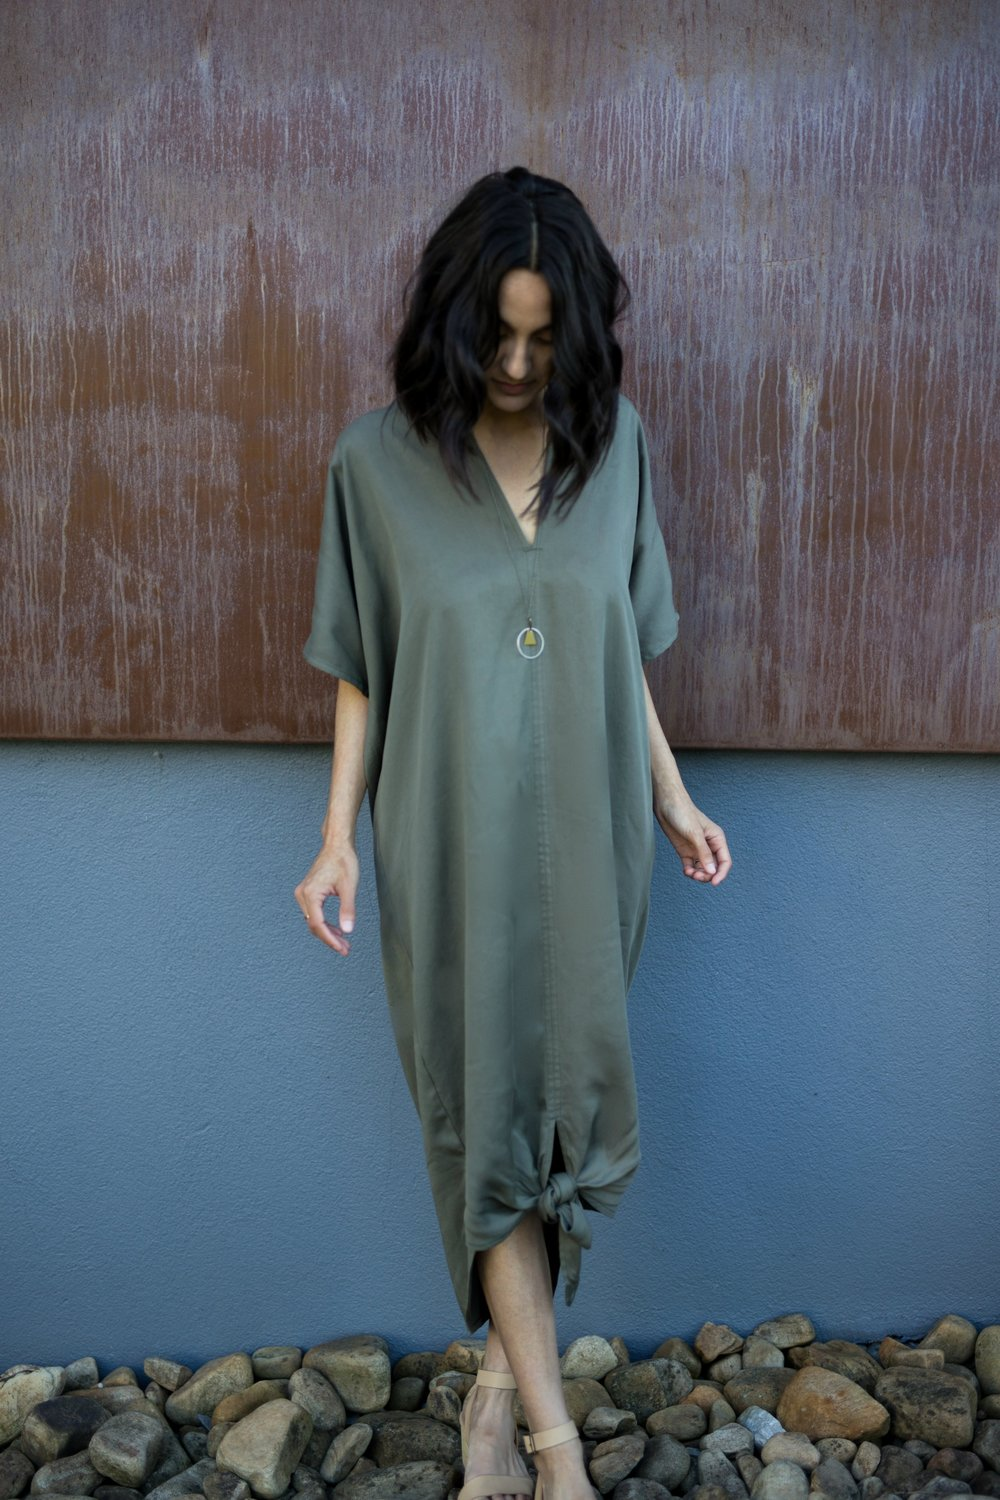 Pictured: The Bow Dress in Olive